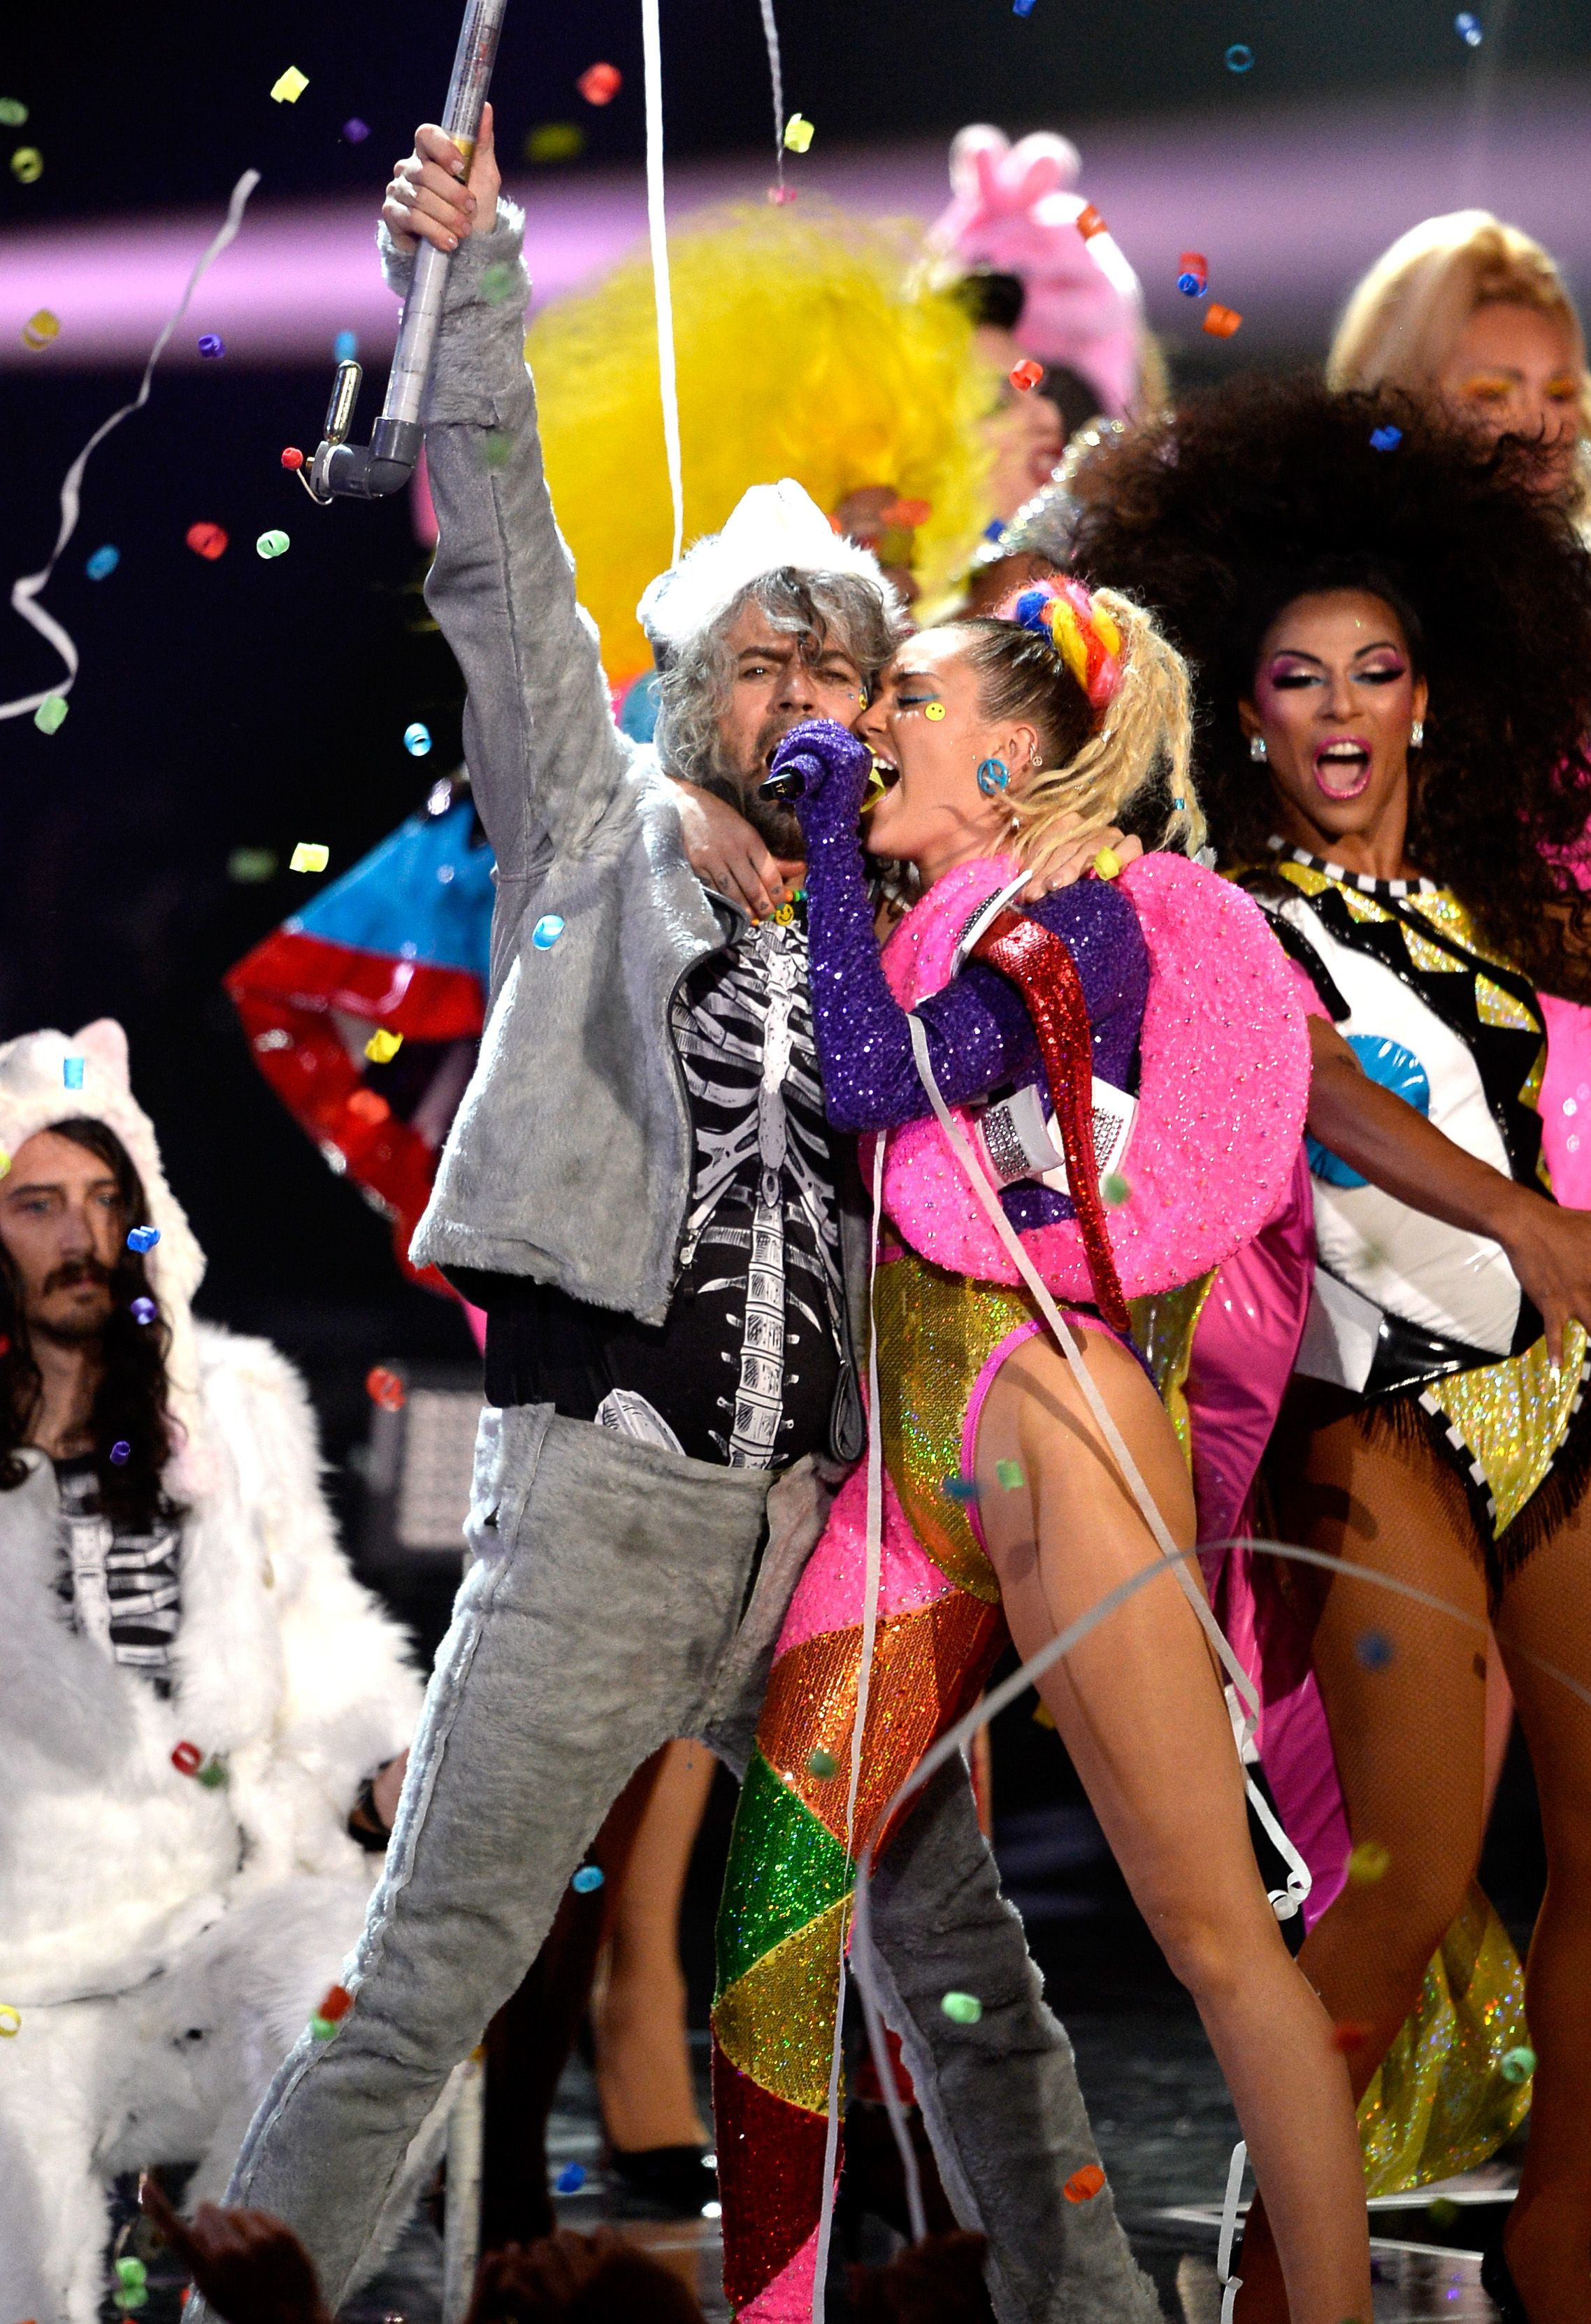 Miley Cyrus, Flaming Lips plan nude concert, Entertainment